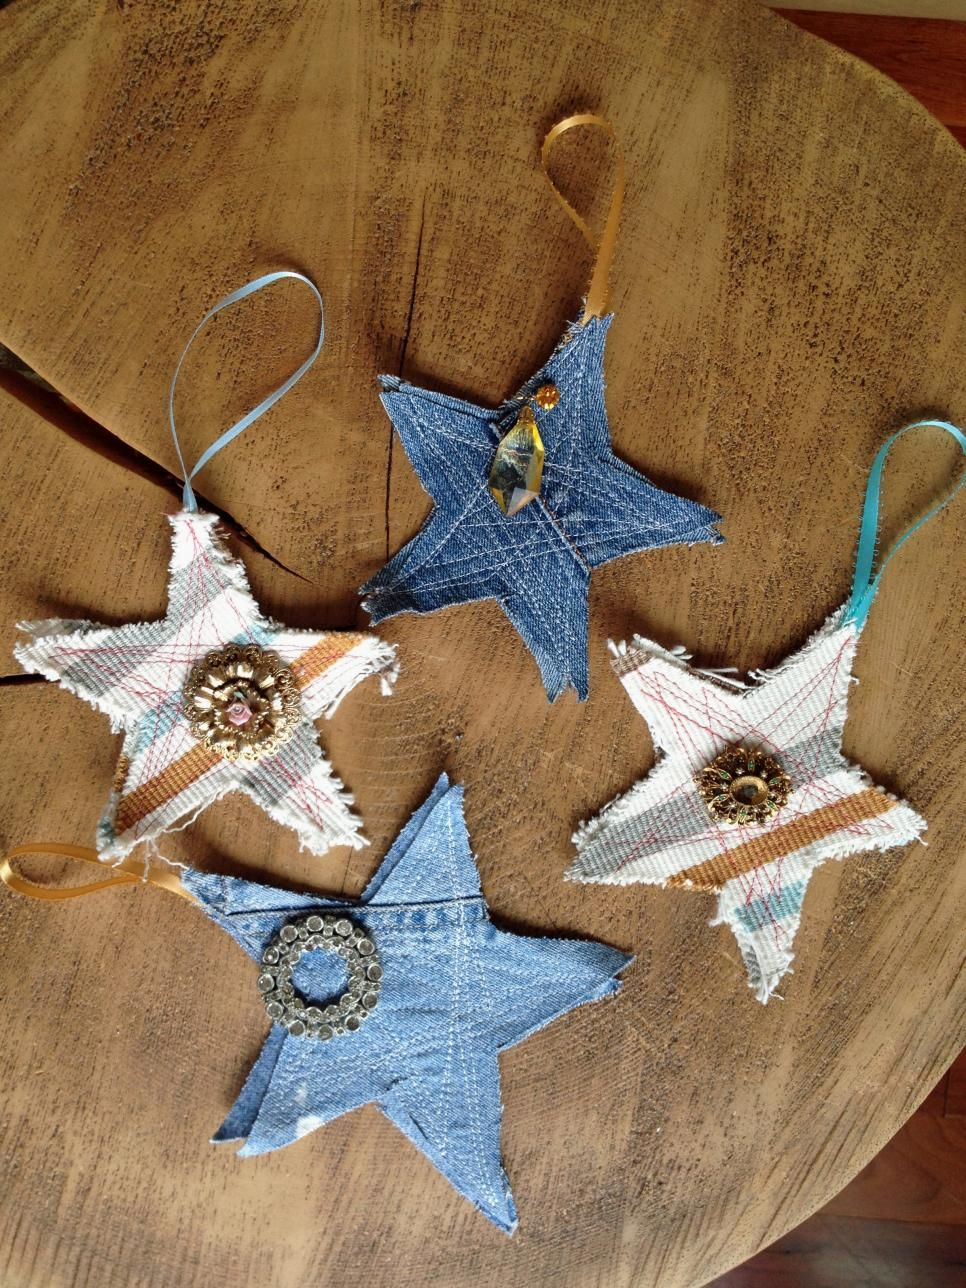 Rustic Christmas Ornaments 19 Rustic Christmas Decorations Made Inexpensively From Upcycled